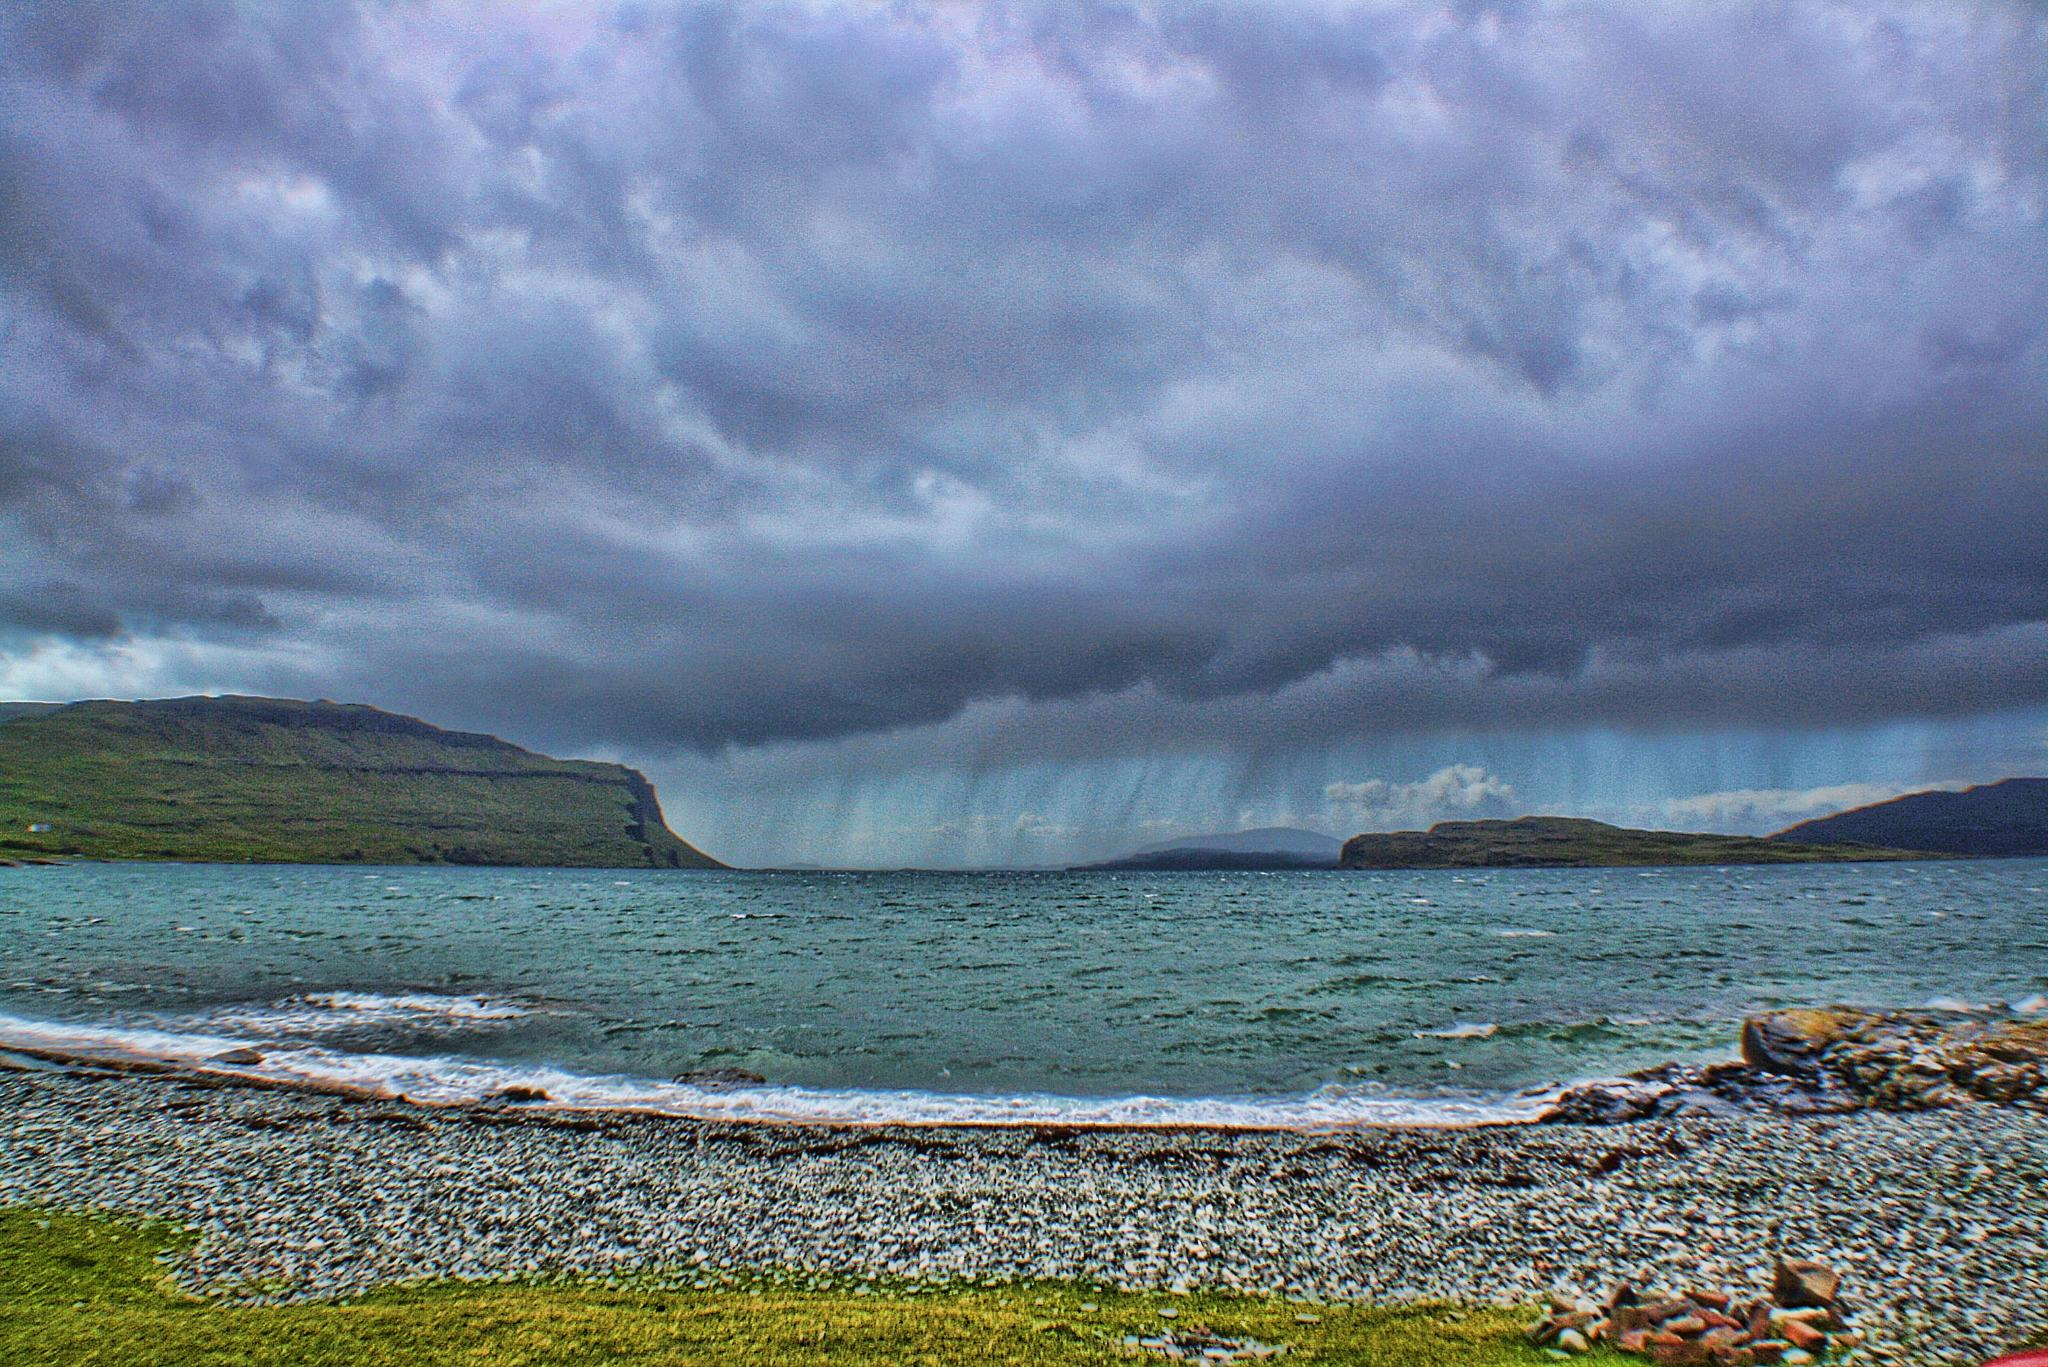 Loch Na Keal storm by keve E